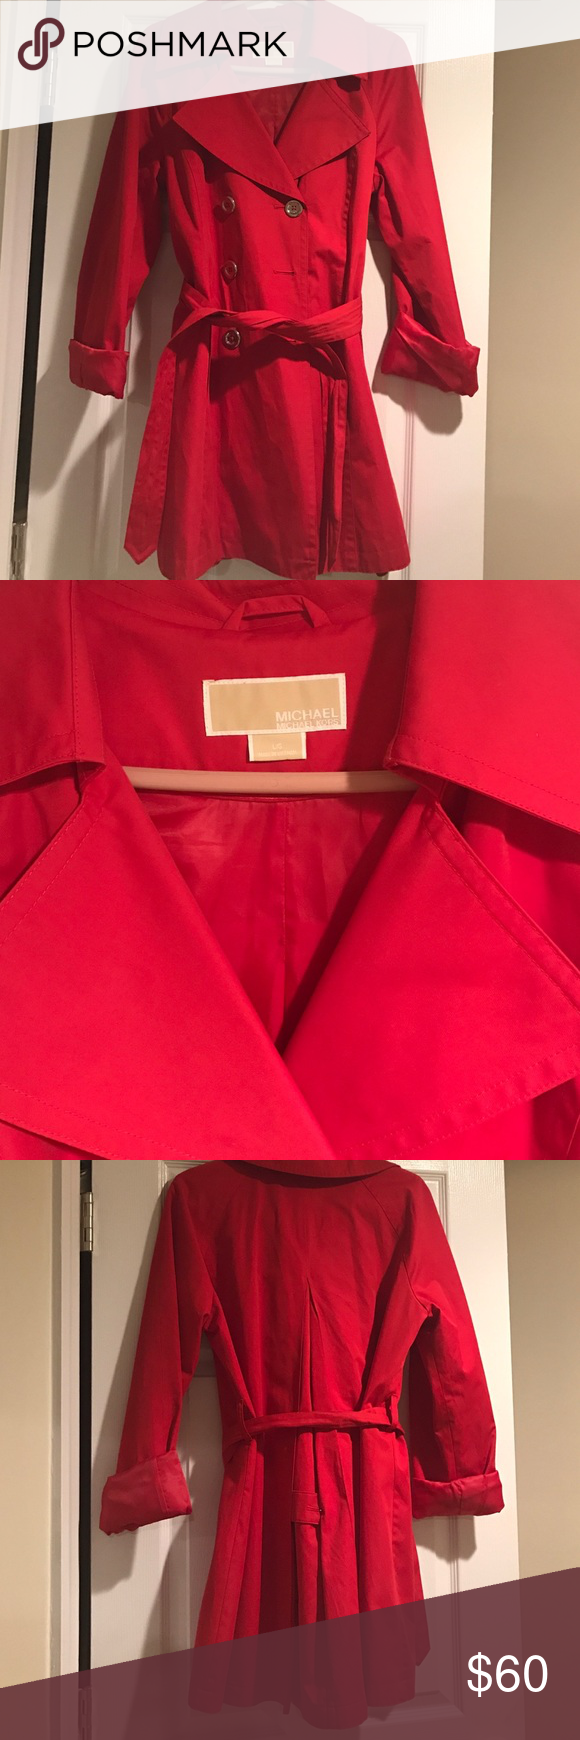 SOLD Michael Kors red trench coat   Red trench coat, Trench and ...